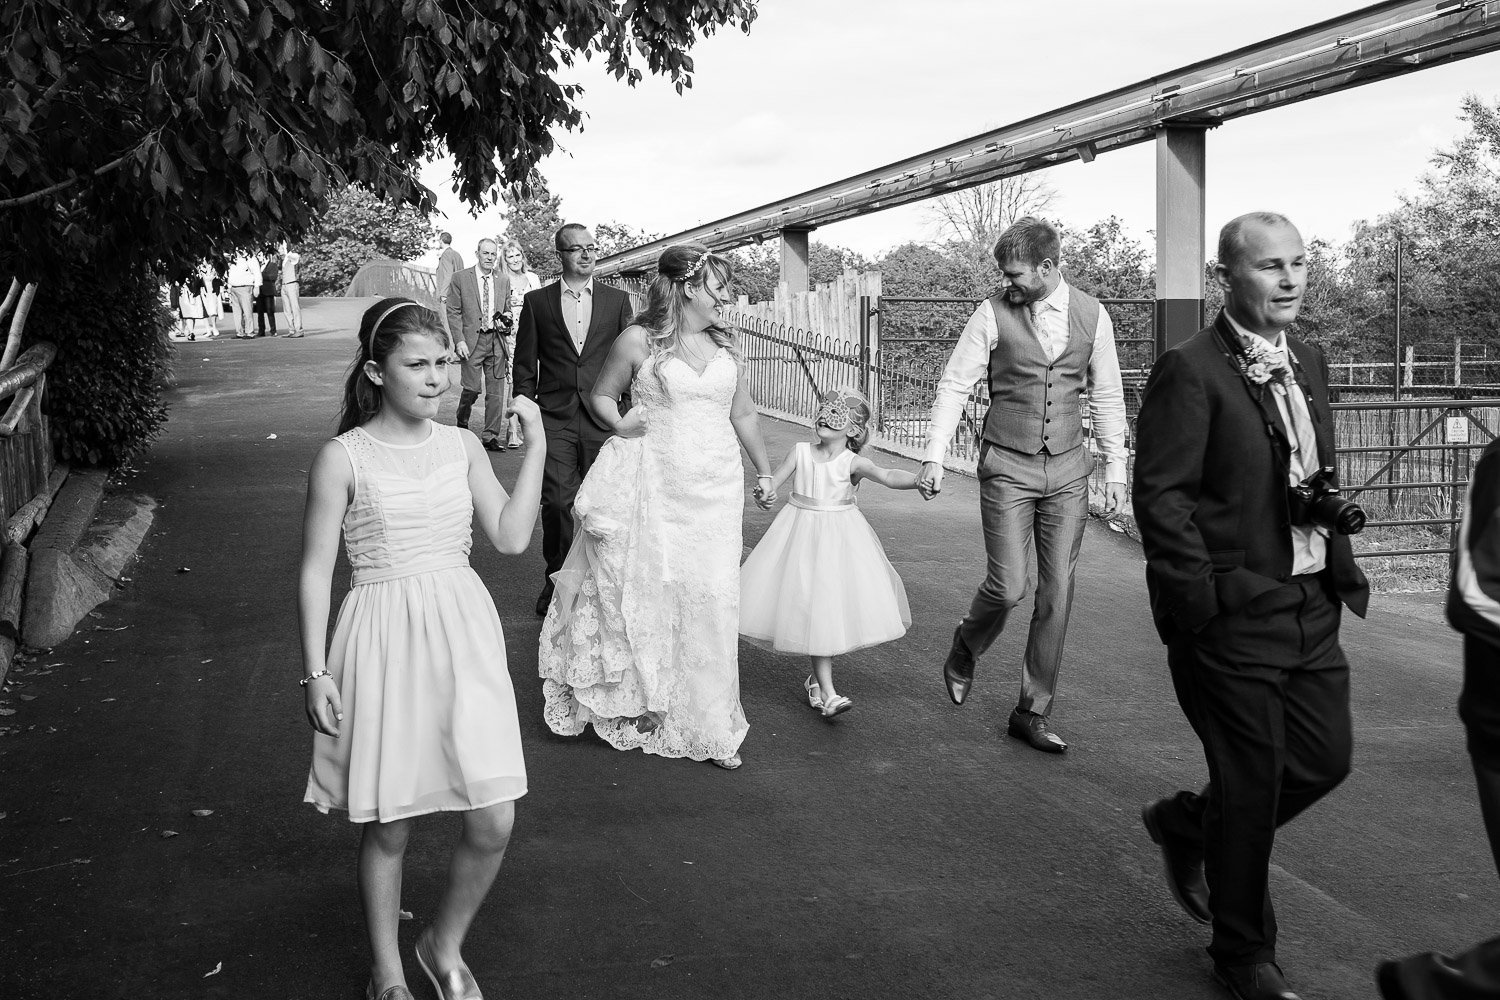 Wedding guests at chester zoo